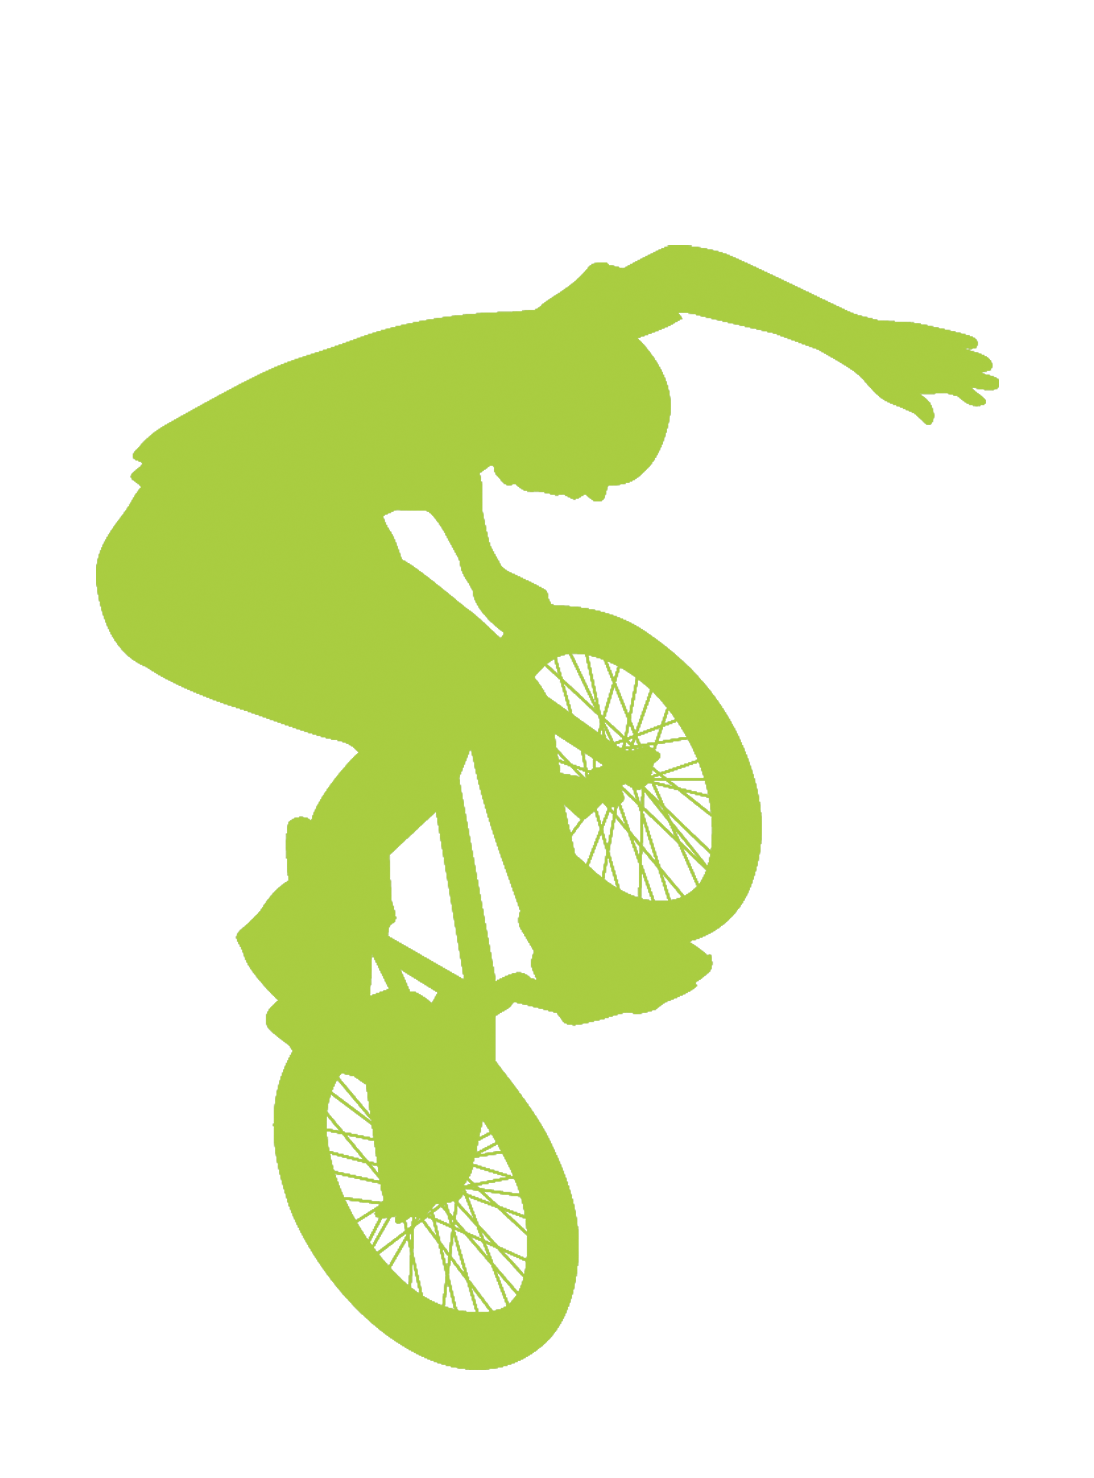 Bmx exquisite aesthetic bike. Clipart bicycle cycling sport